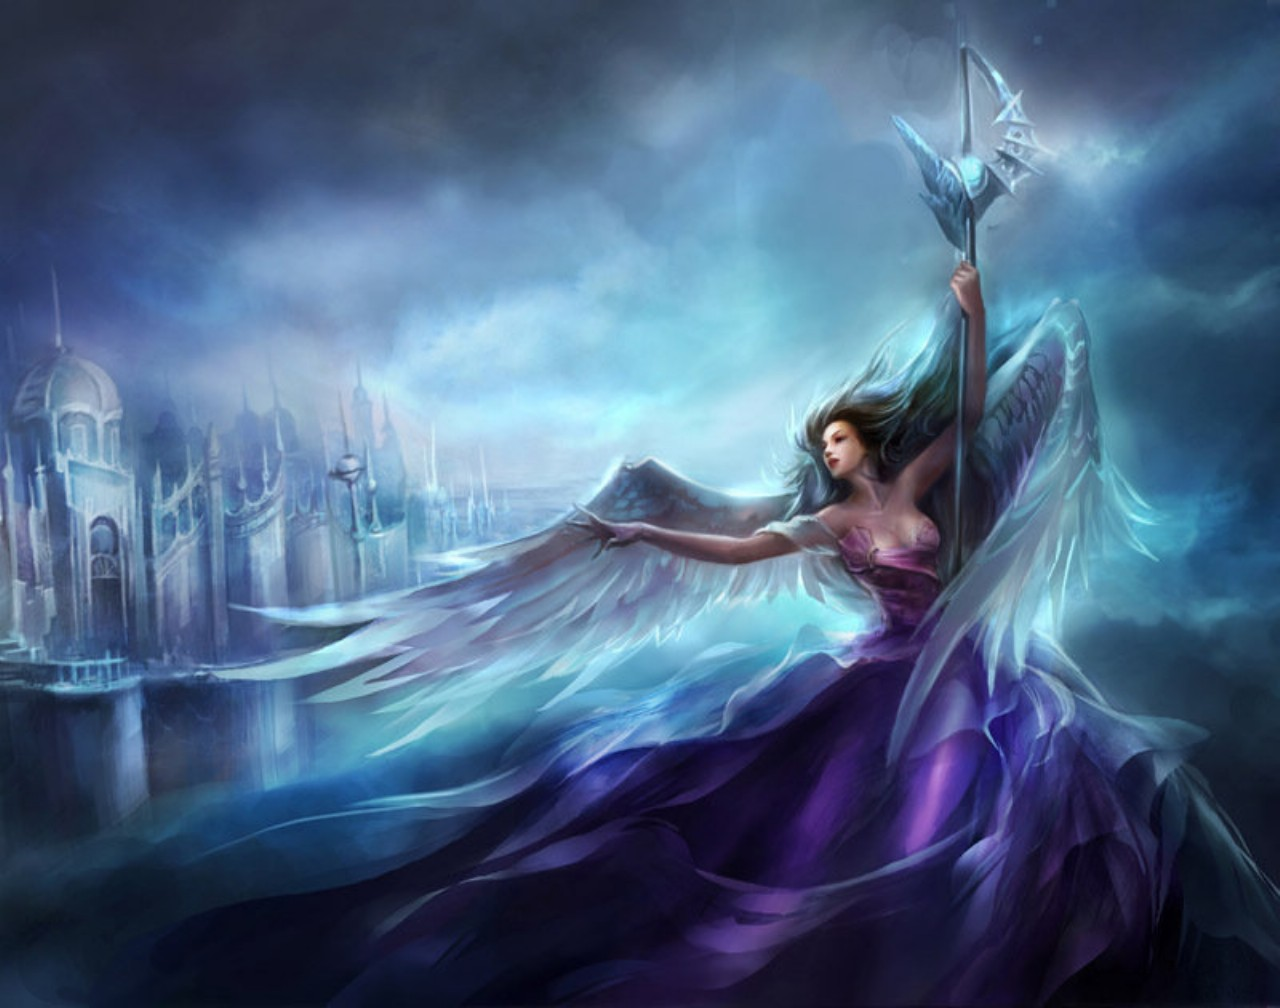 HD Fantasy Woman Wallpapers 1600x1200 Wallpapers 1280x1008